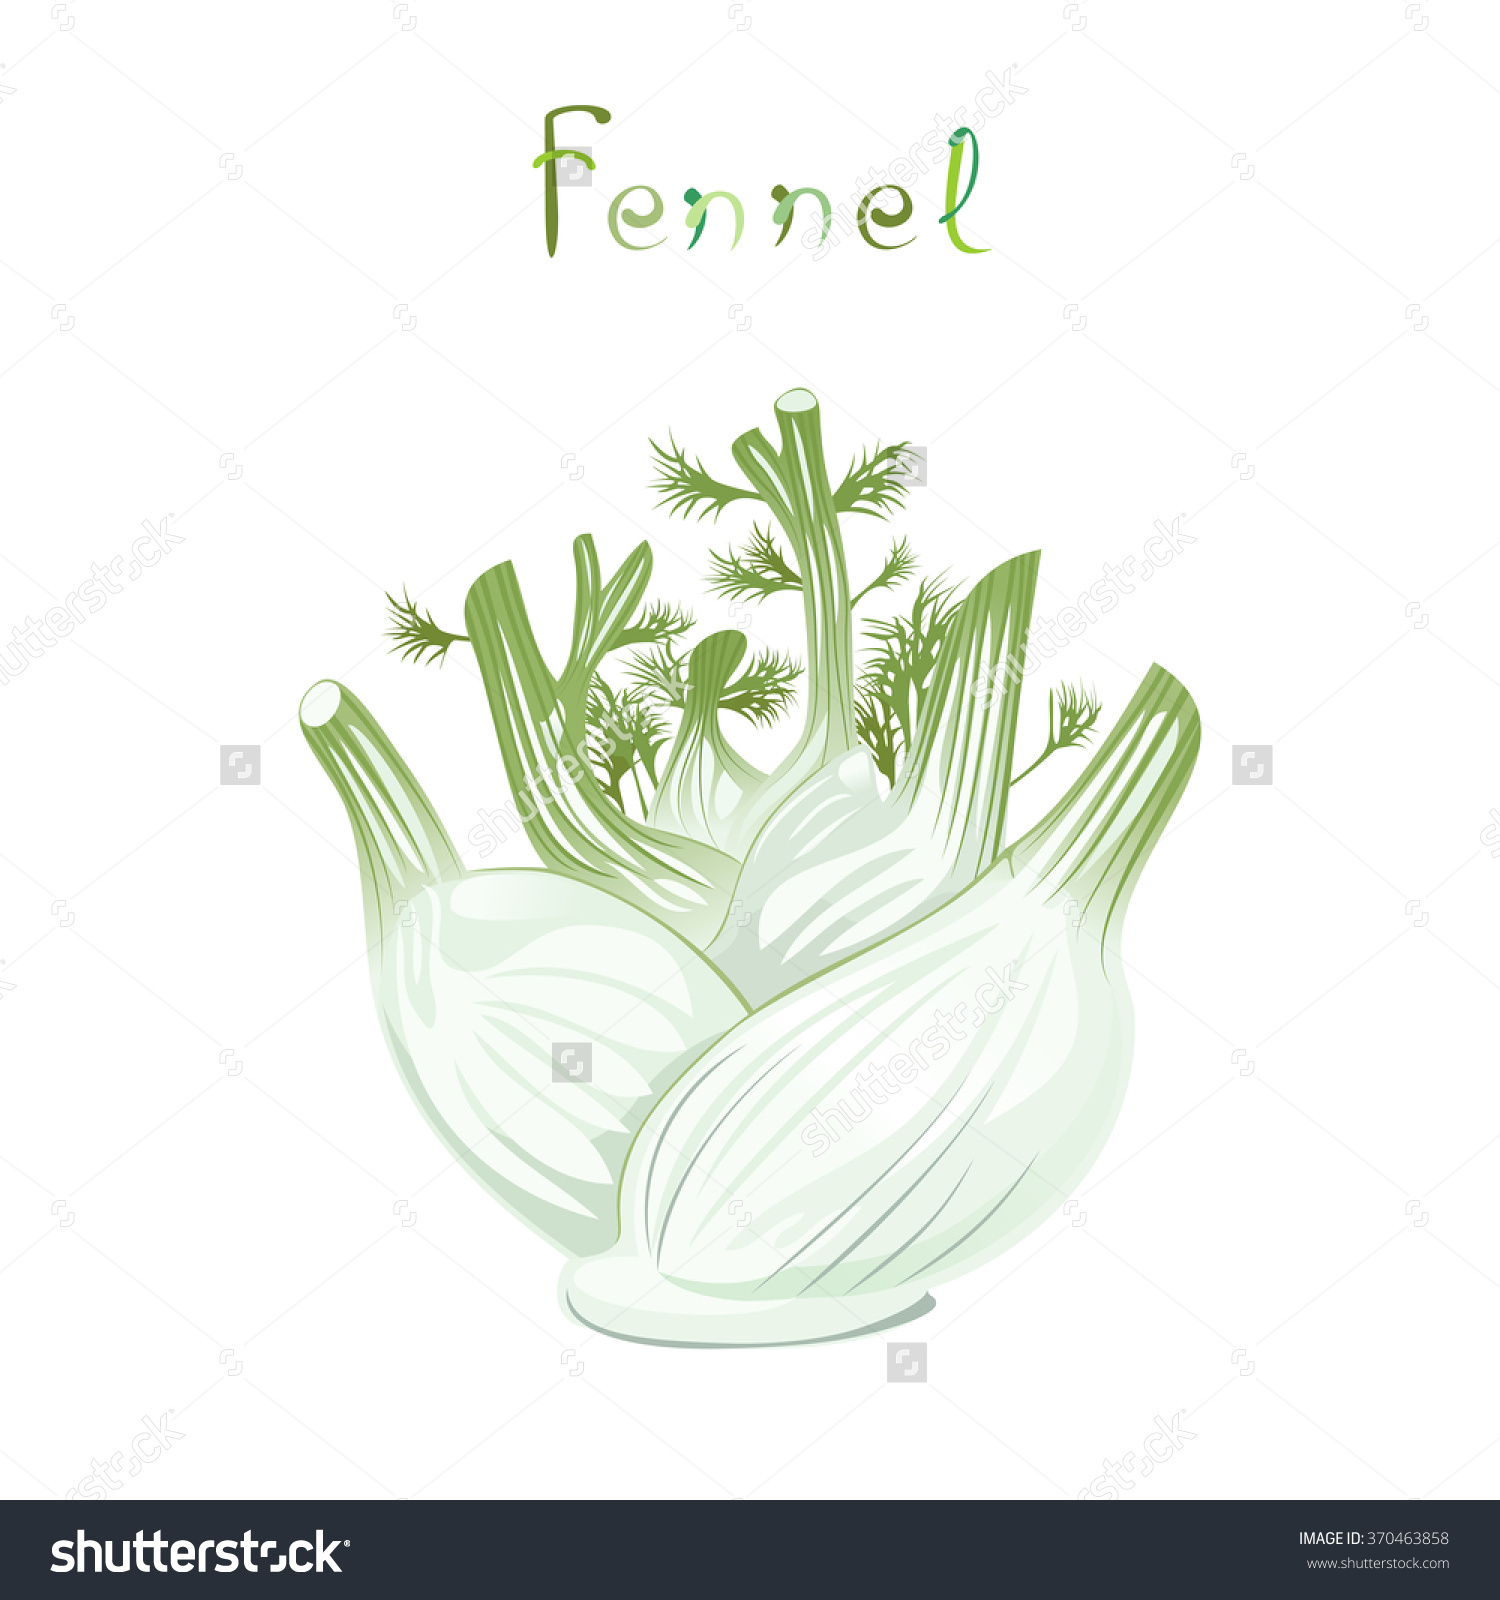 Fennel Bulb Illustration Fresh Vegetable Cartoon Stock Vector.